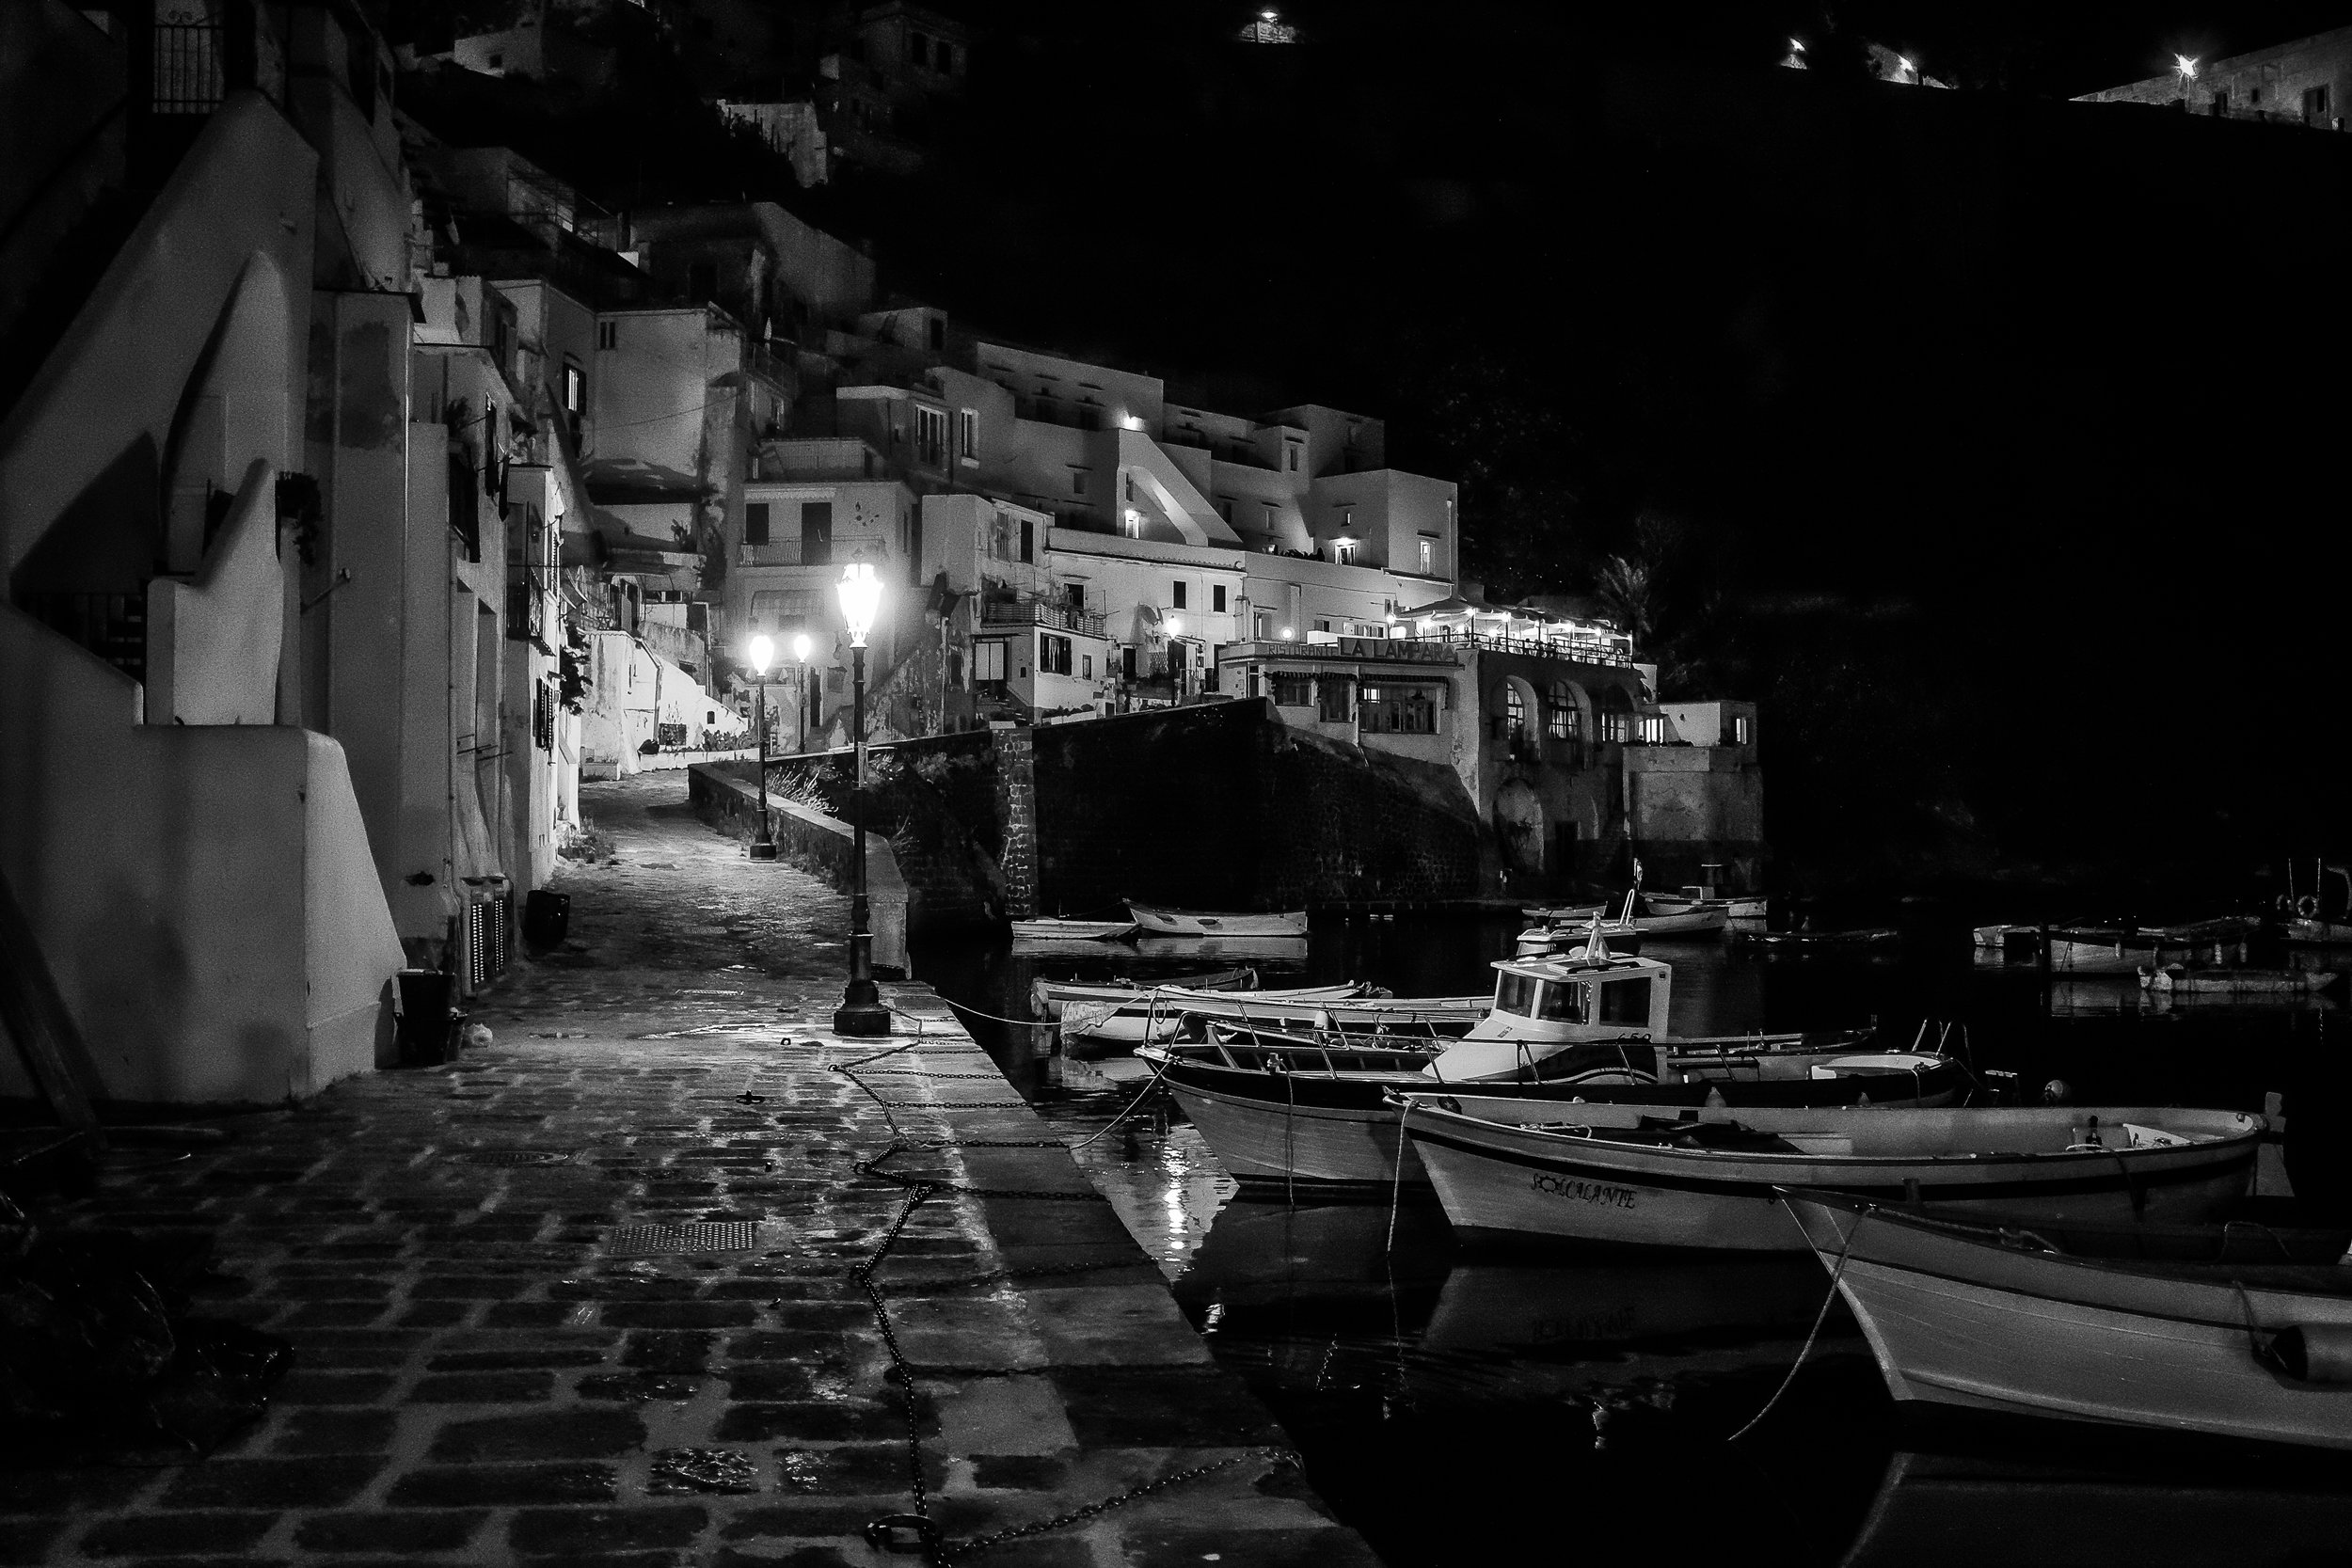 Corricella Harbor, Procida. June, 2013